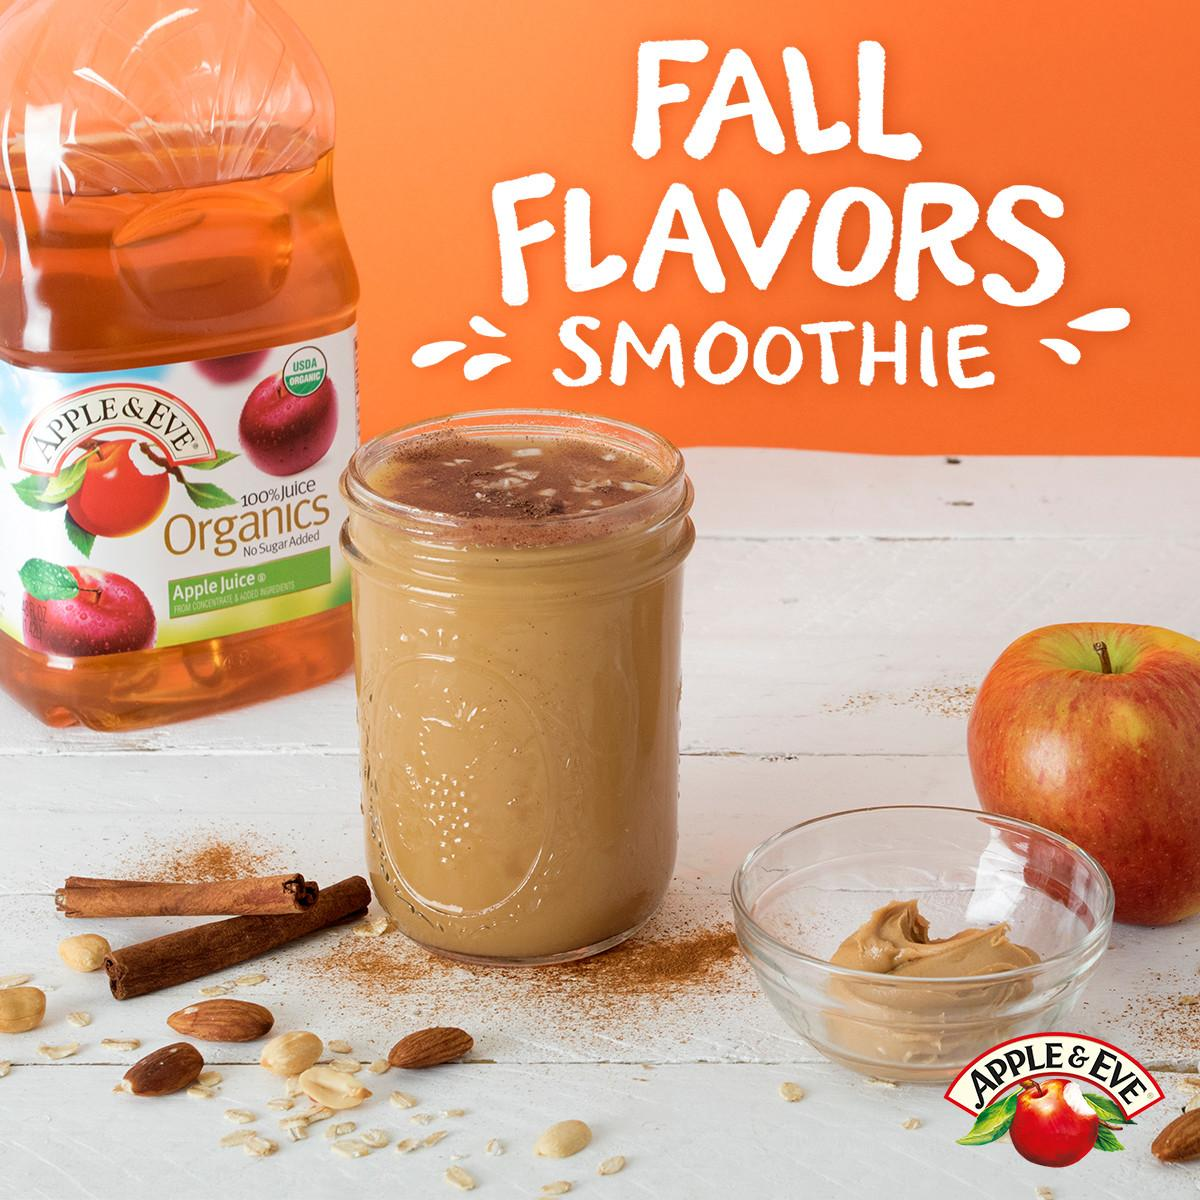 Fall Flavors Smoothie Apple Eve